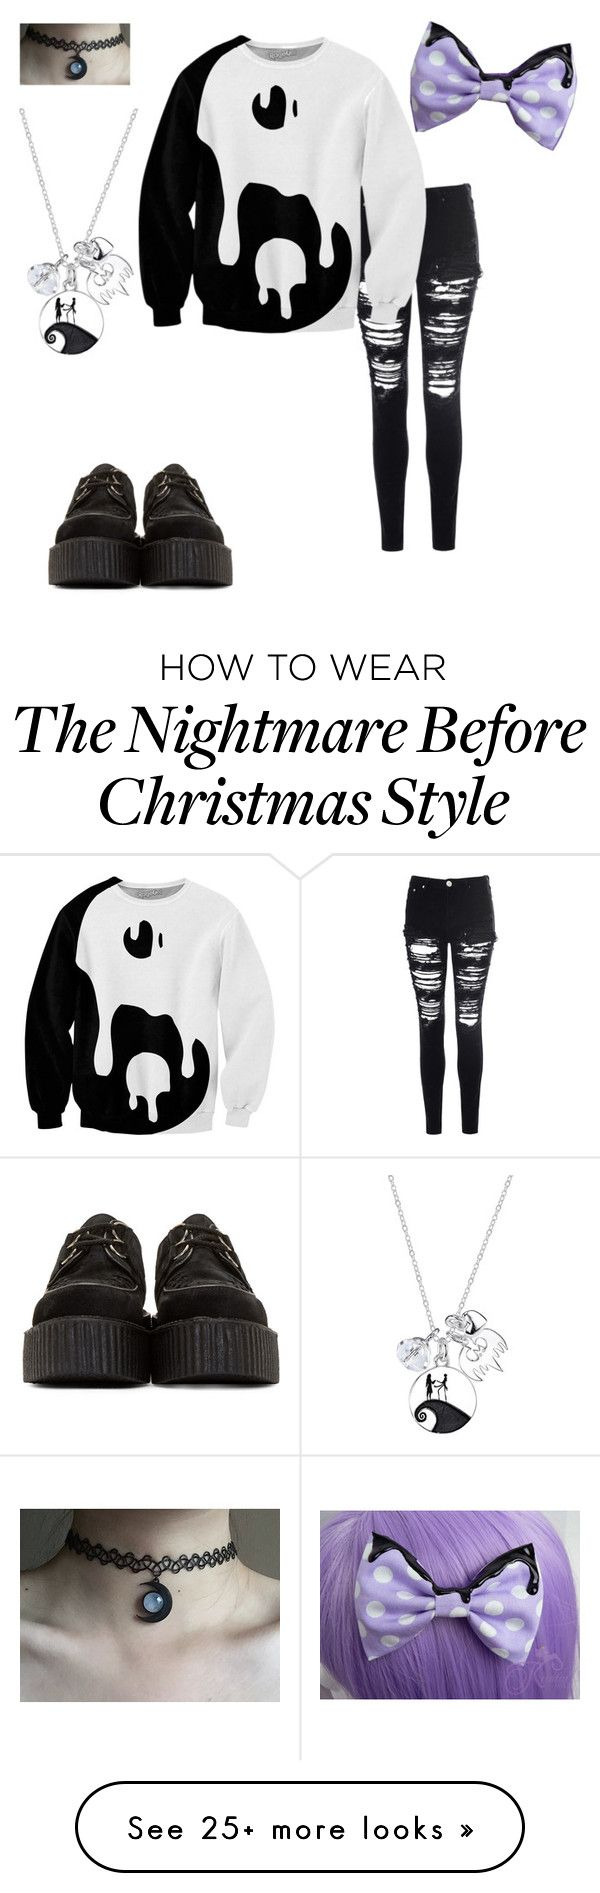 """Untitled #61"" by rawr-the-dinosaur on Polyvore featuring Glamorous, Underground and Disney"